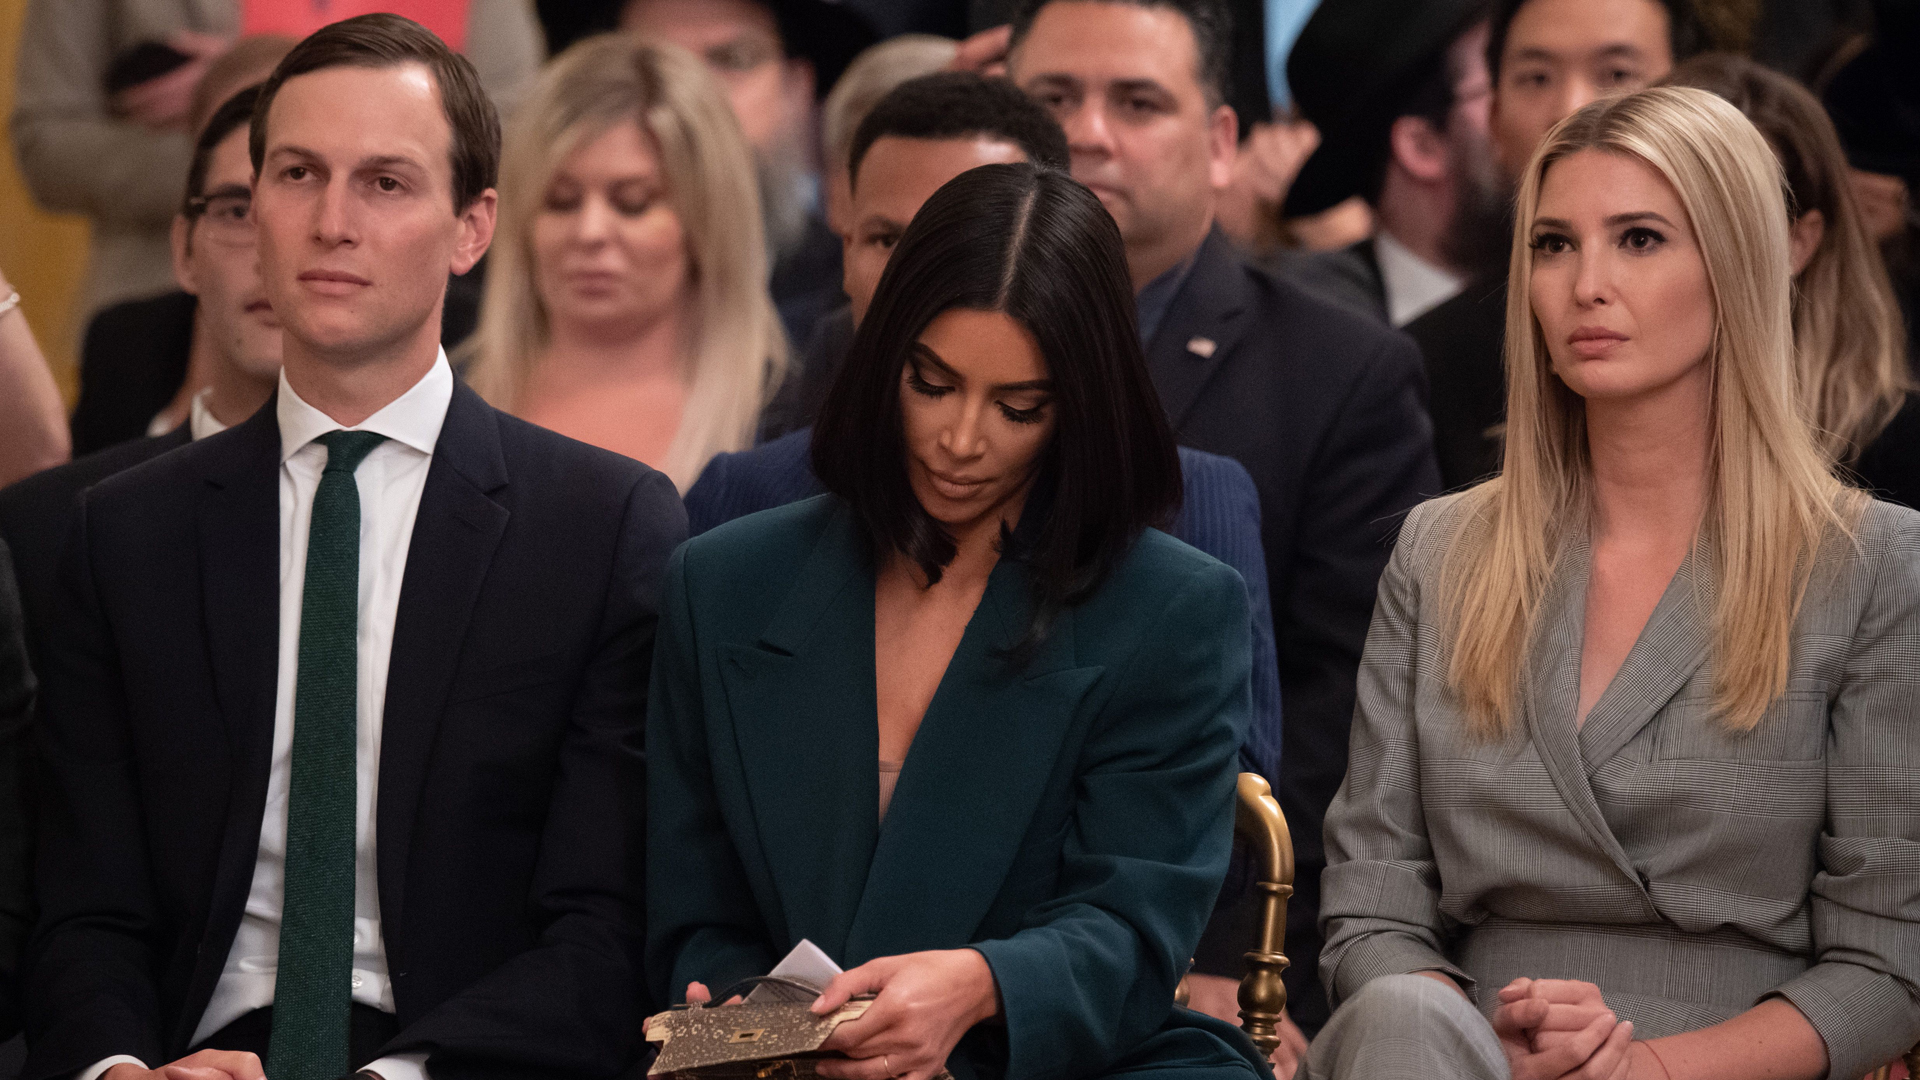 Kim Kardashian(C), Ivanka Trump and Jared Kushner listen as US President Donald Trump speaks about second chance hiring and criminal justice reform in the East Room of the White House in Washington, DC, June 13, 2019. (Credit: Saul Loeb/AFP/Getty Images)